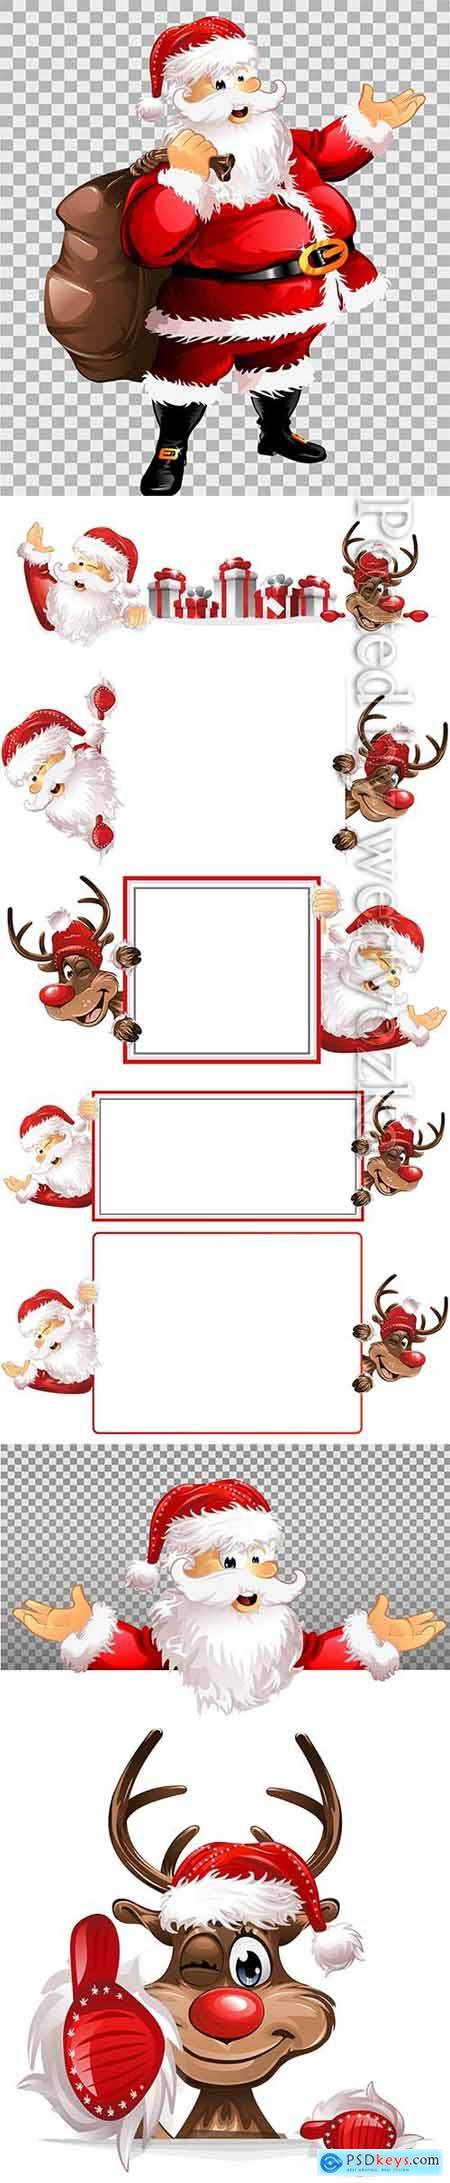 Santa Claus and deer on a vector background